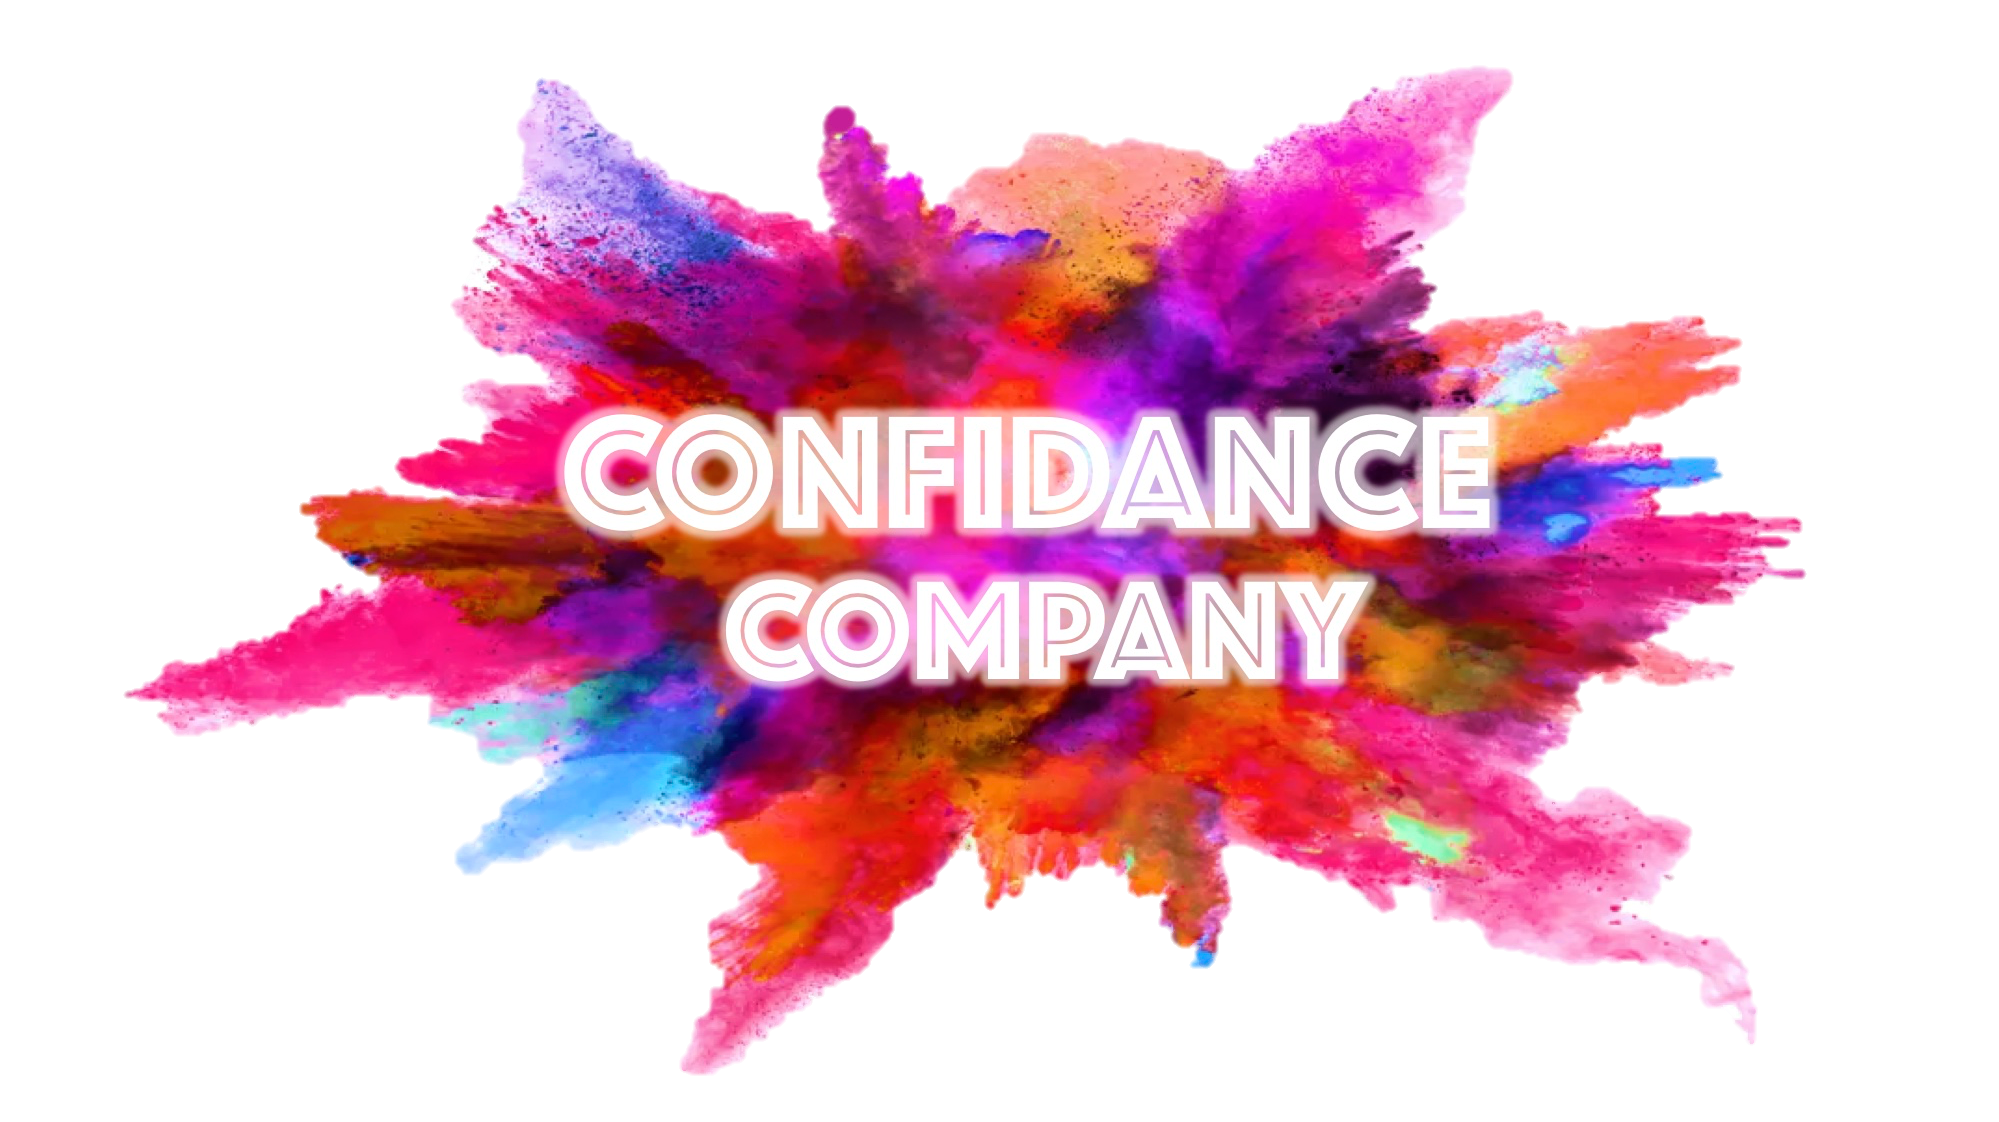 ConfiDance Company